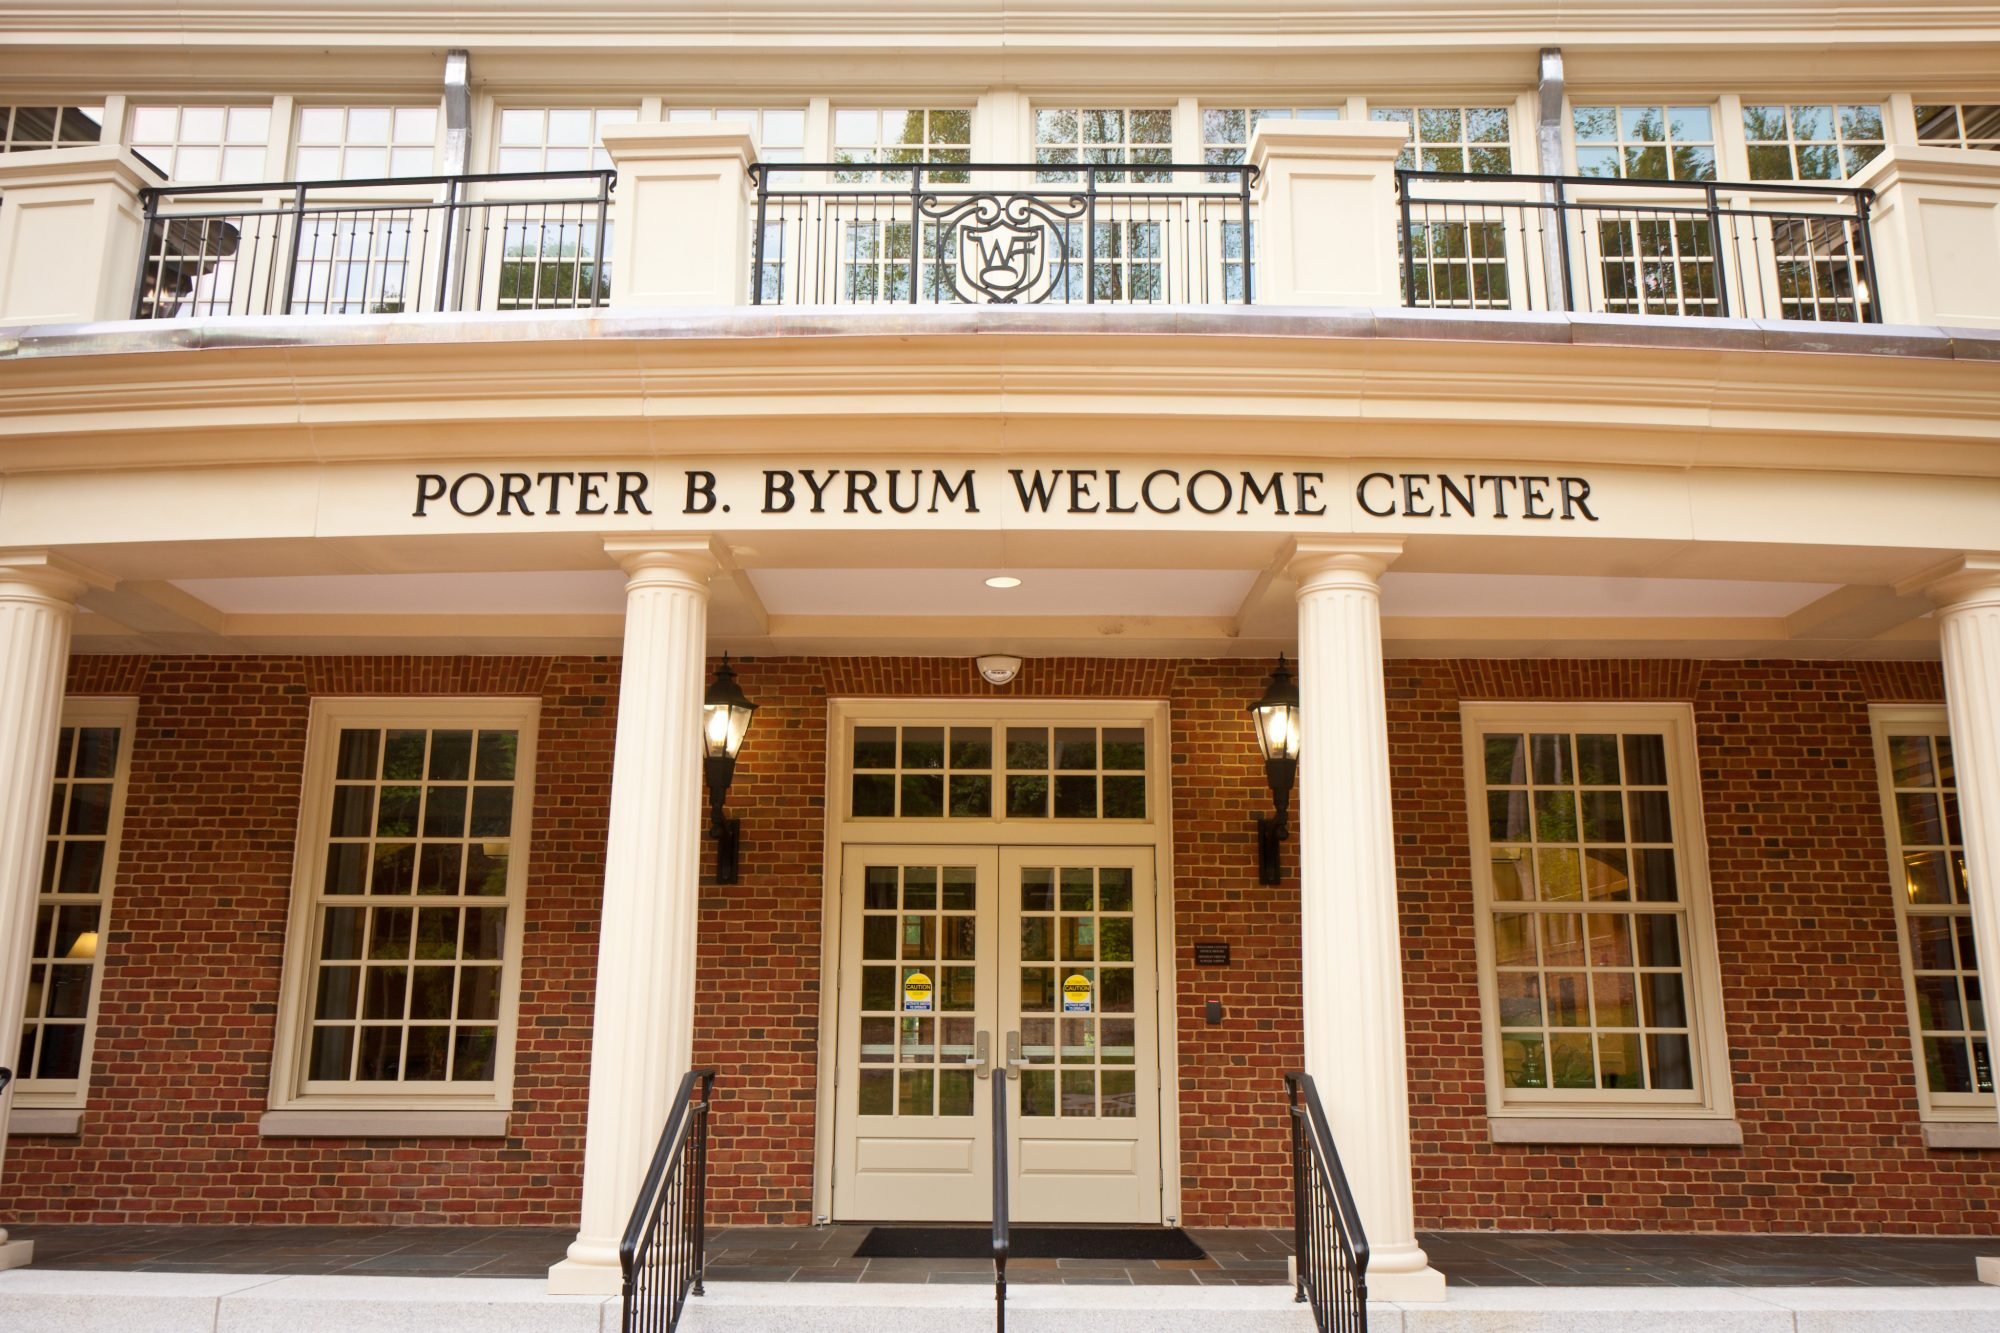 The new welcome and admissions center was officially dedicated as the Porter B. Byrum Welcome Center in 2011.